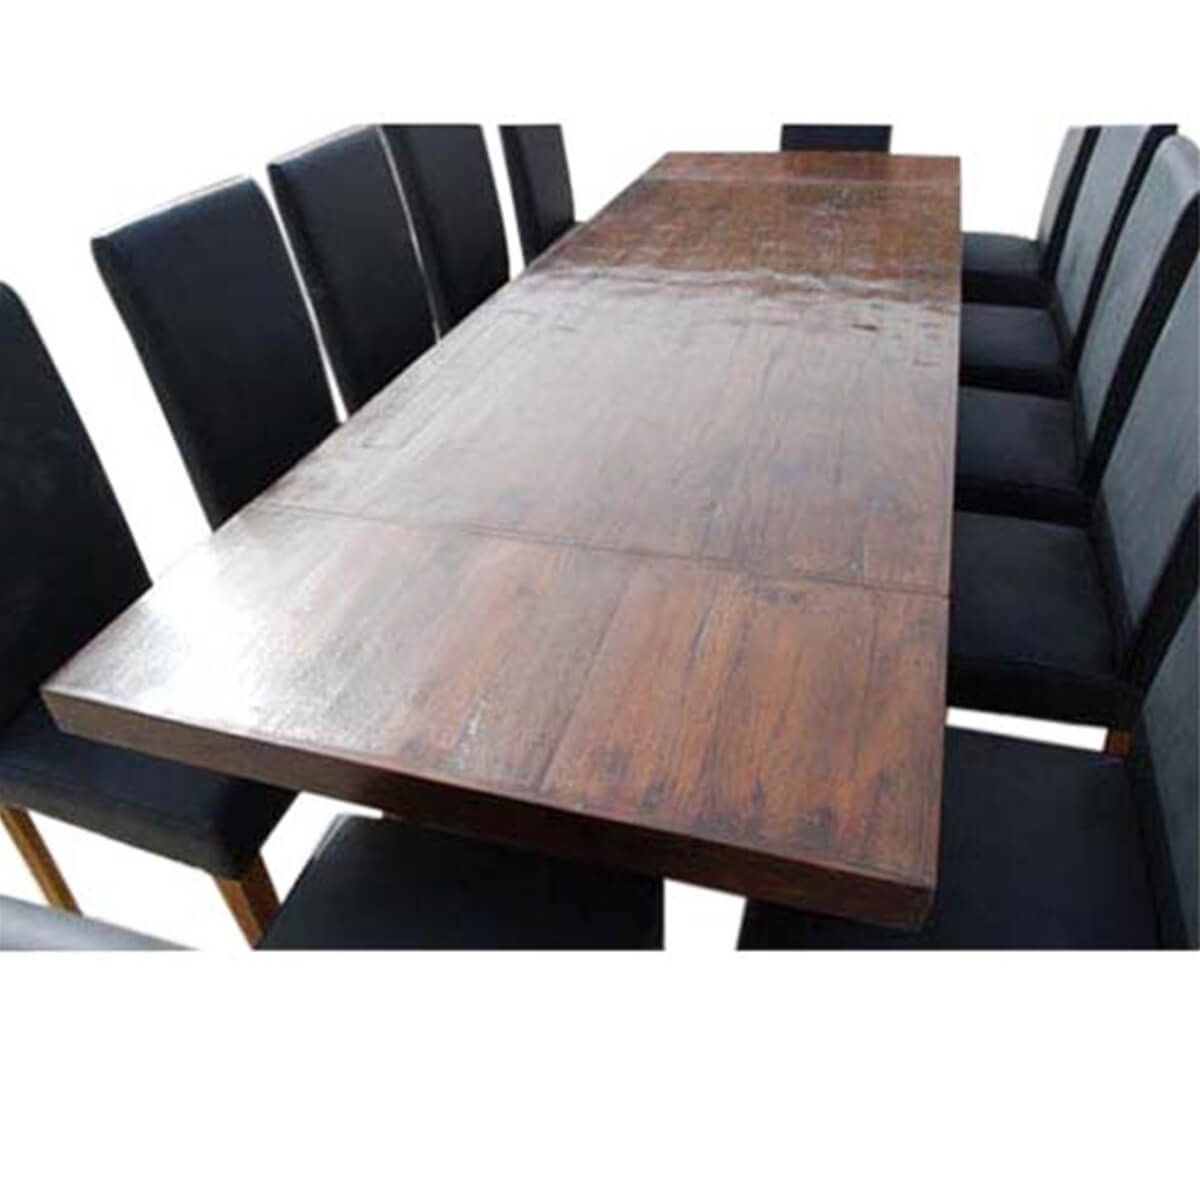 12 Person Dining Table: Matterhorn Extendable Dining Table And Chair Set For 12 People